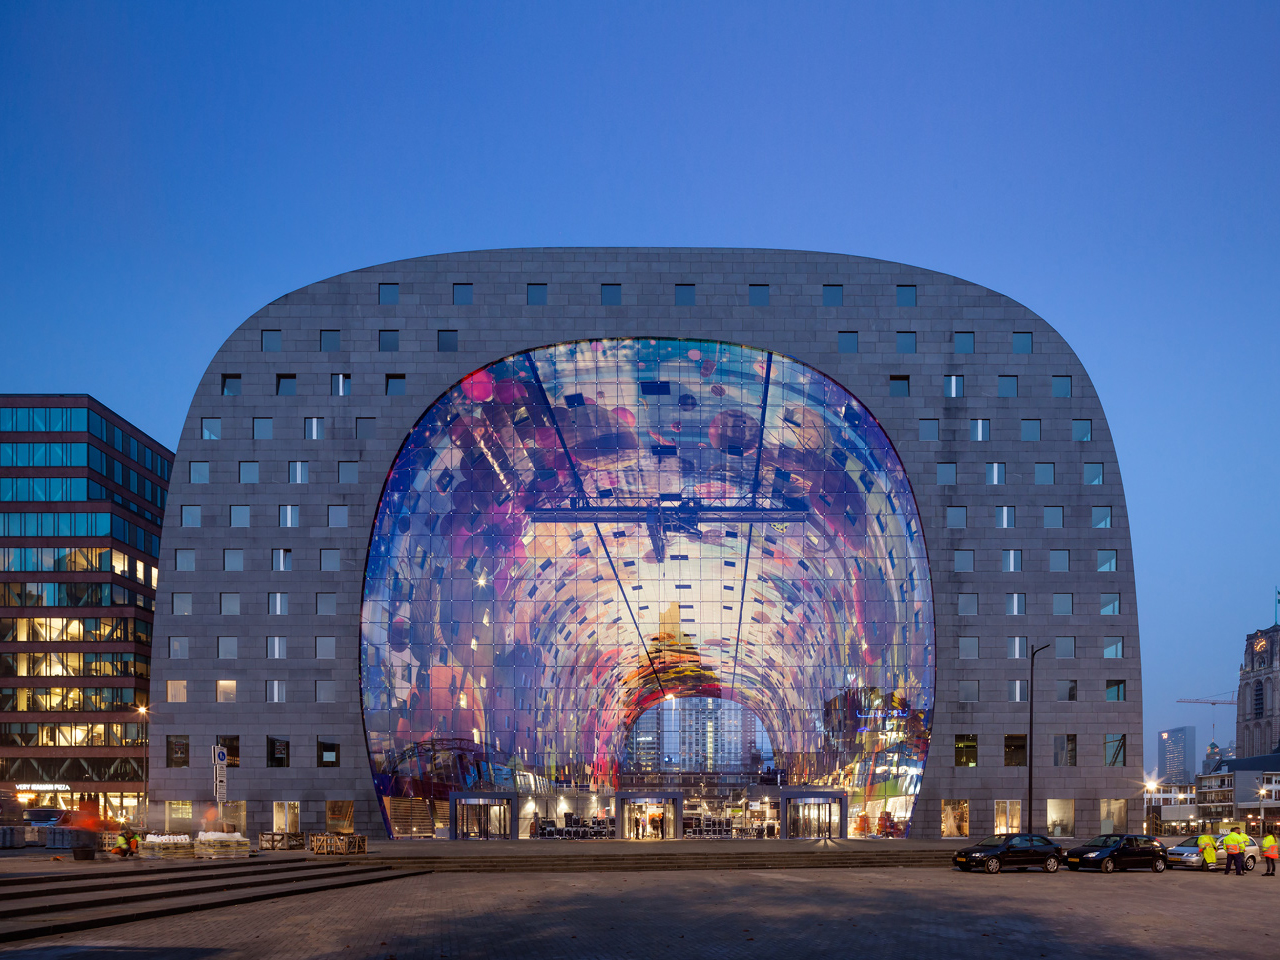 Markthal nominated for Golden Pyramid award